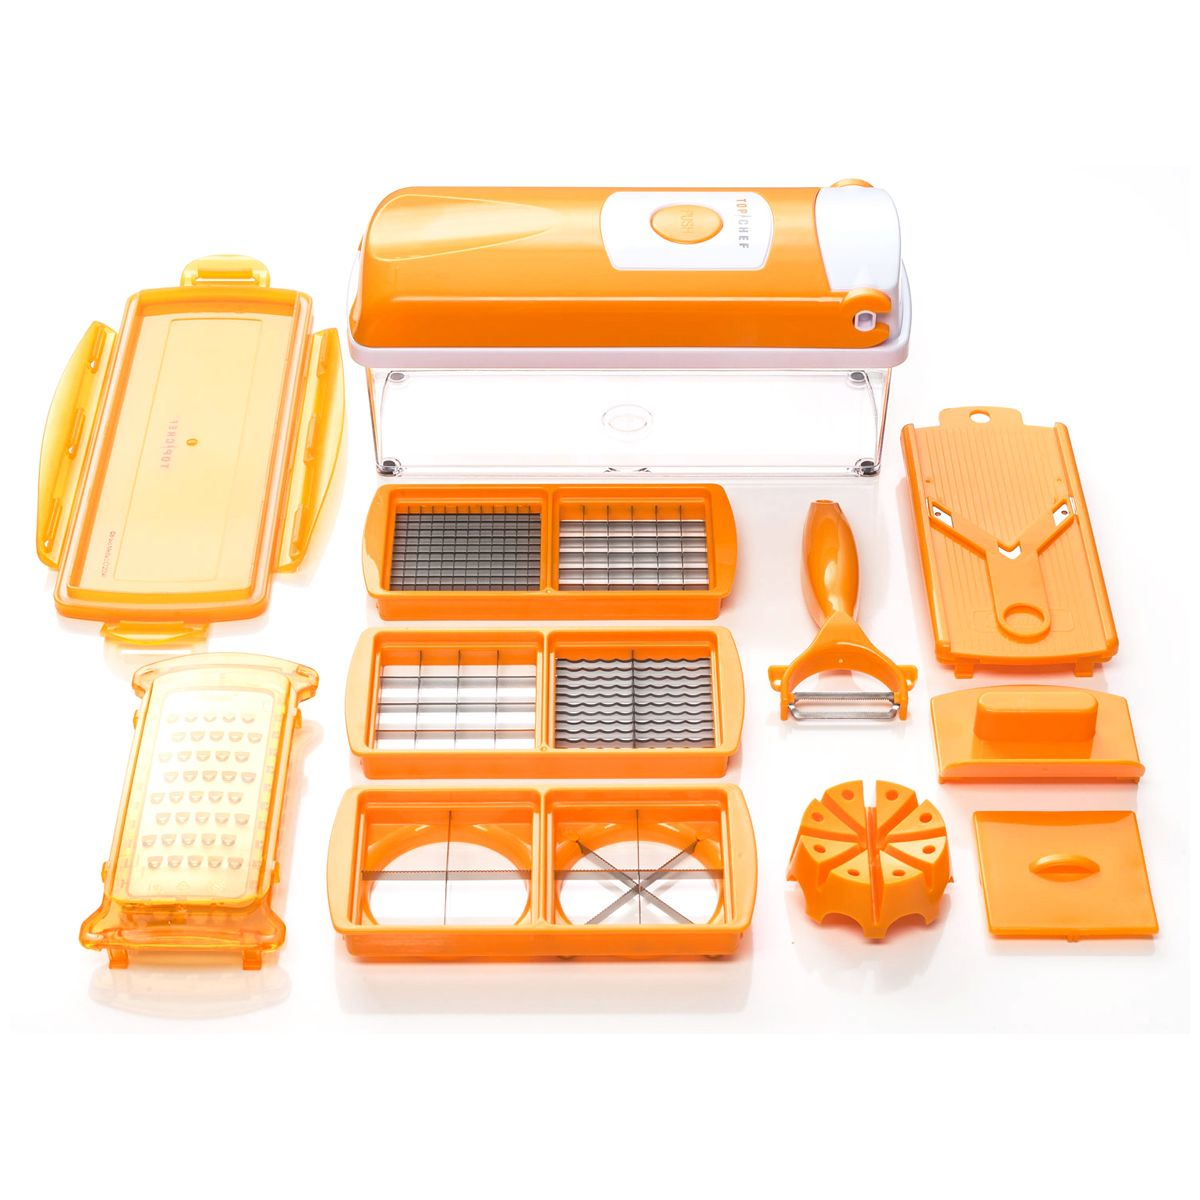 D coupe nicer dicer plus top chef genius - Coupe legume nicer dicer ...